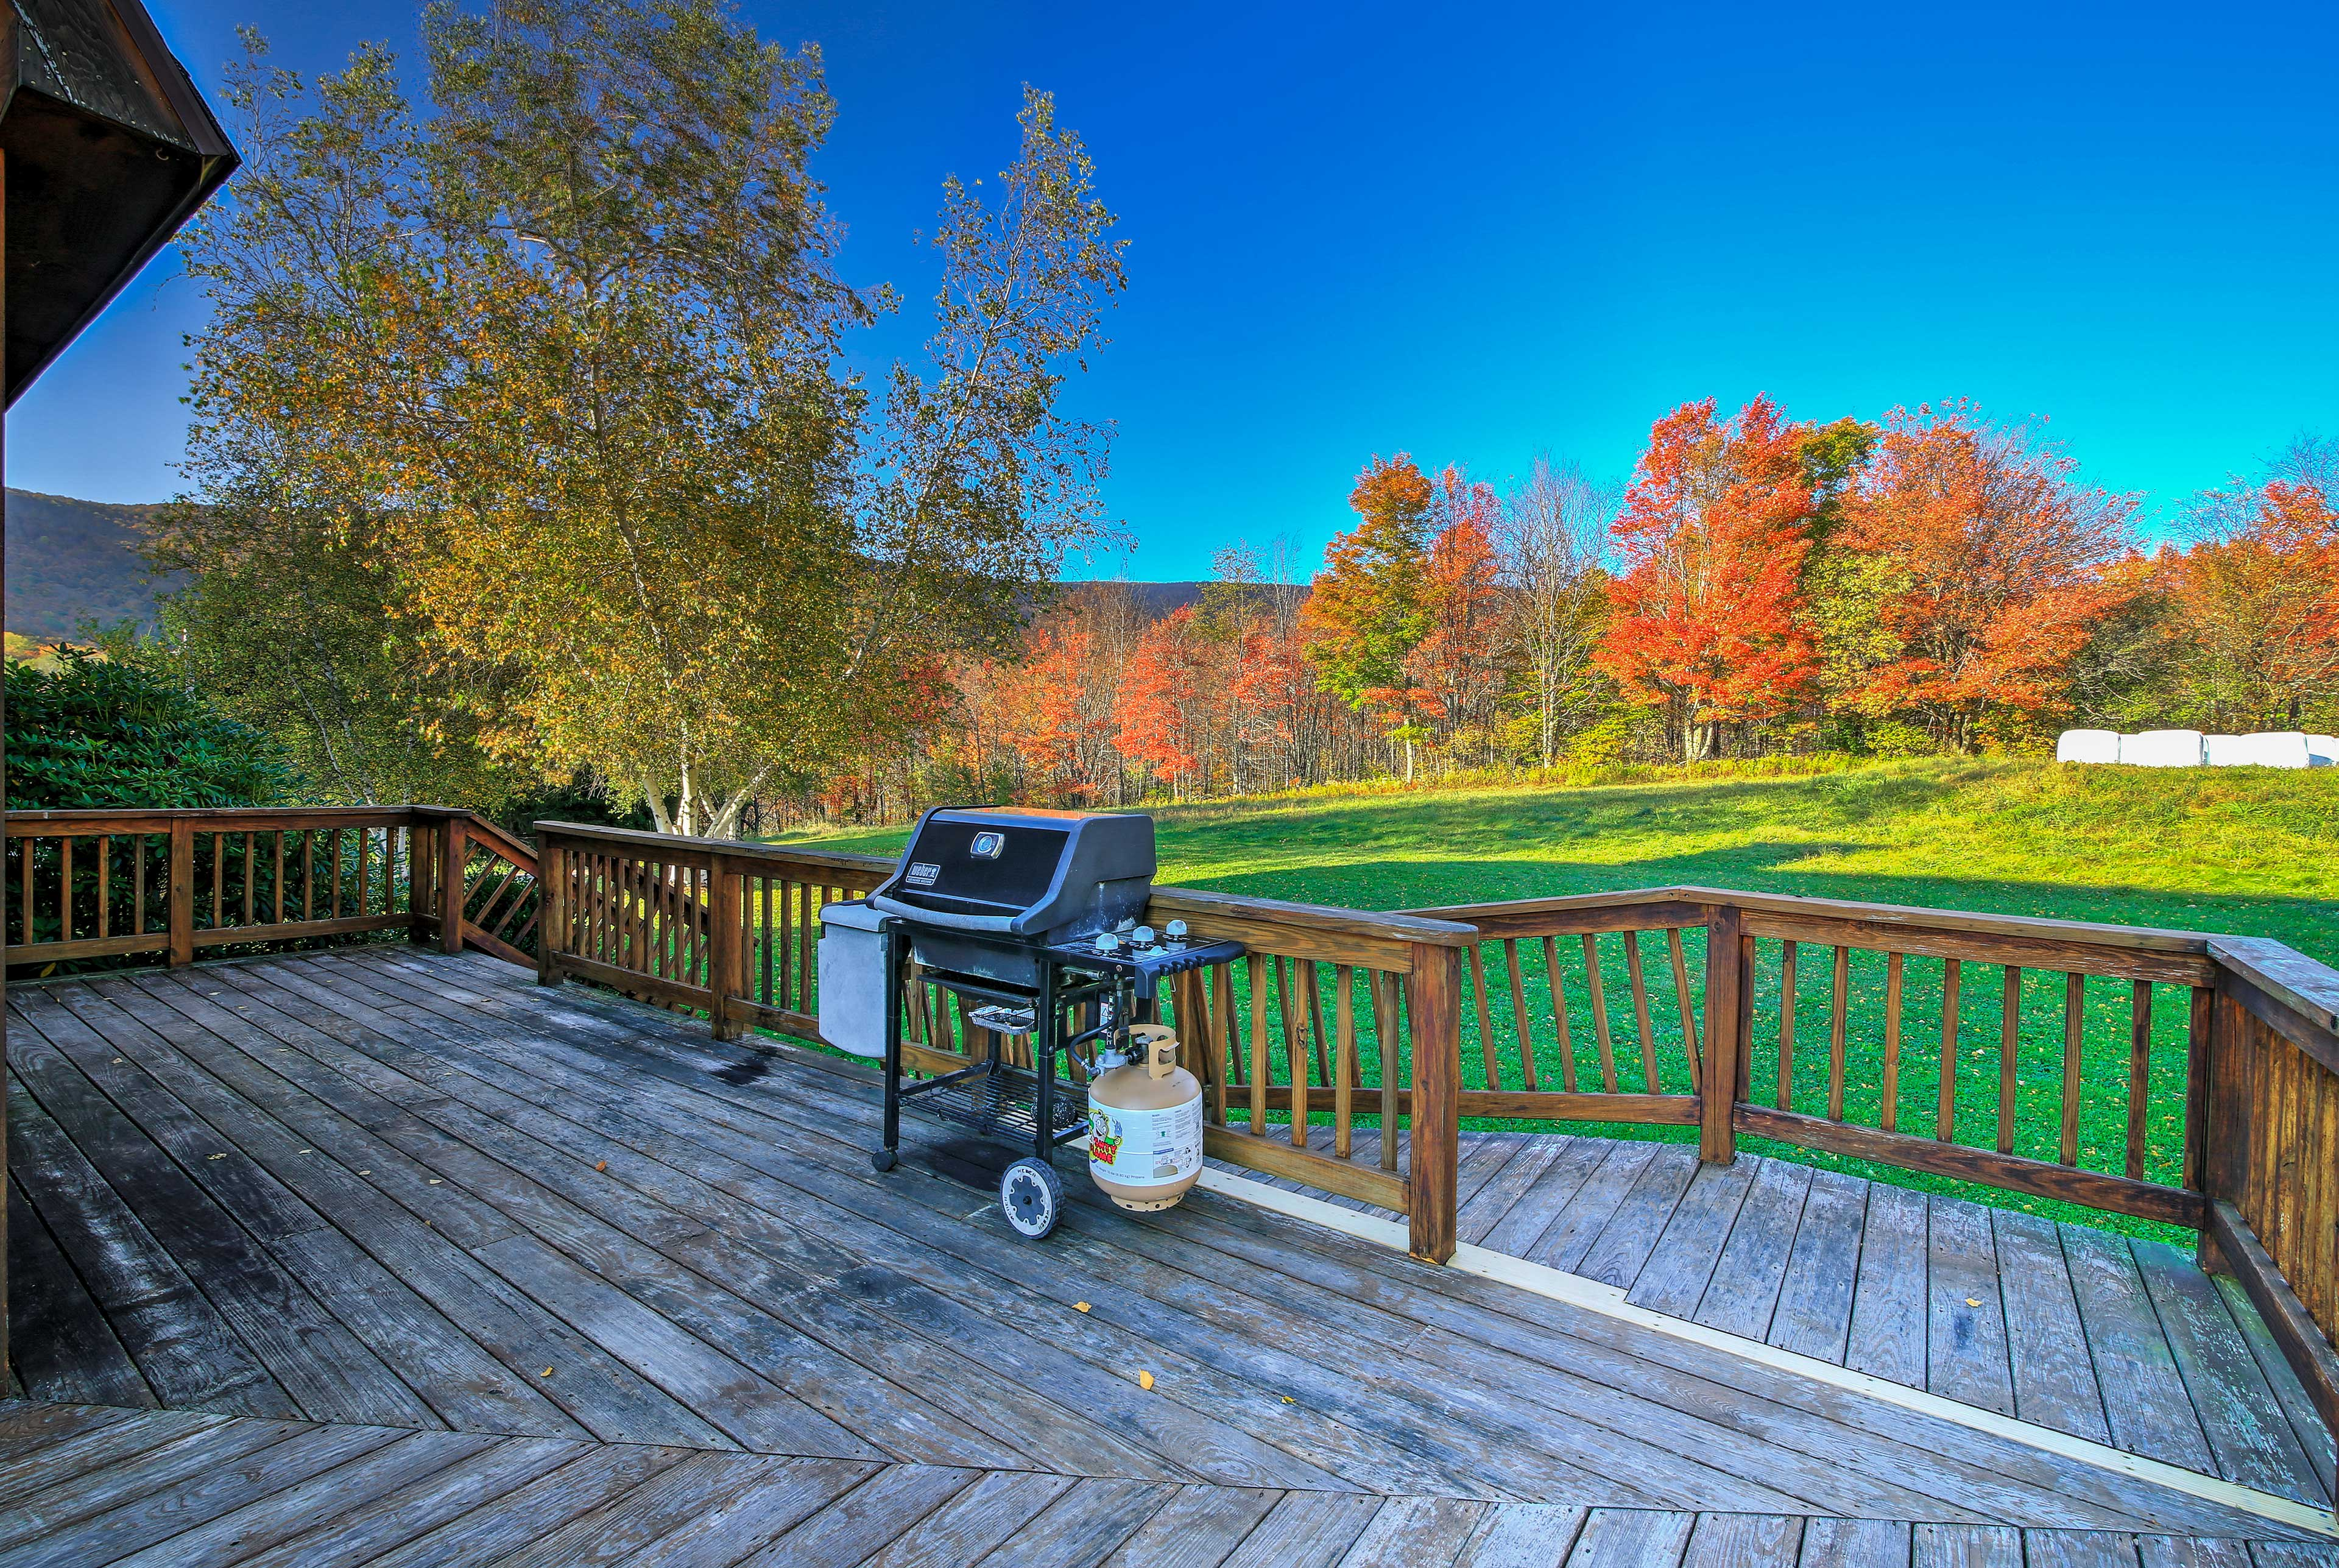 Grill-masters can utilize the gas grill on the back deck for BBQ dinners.